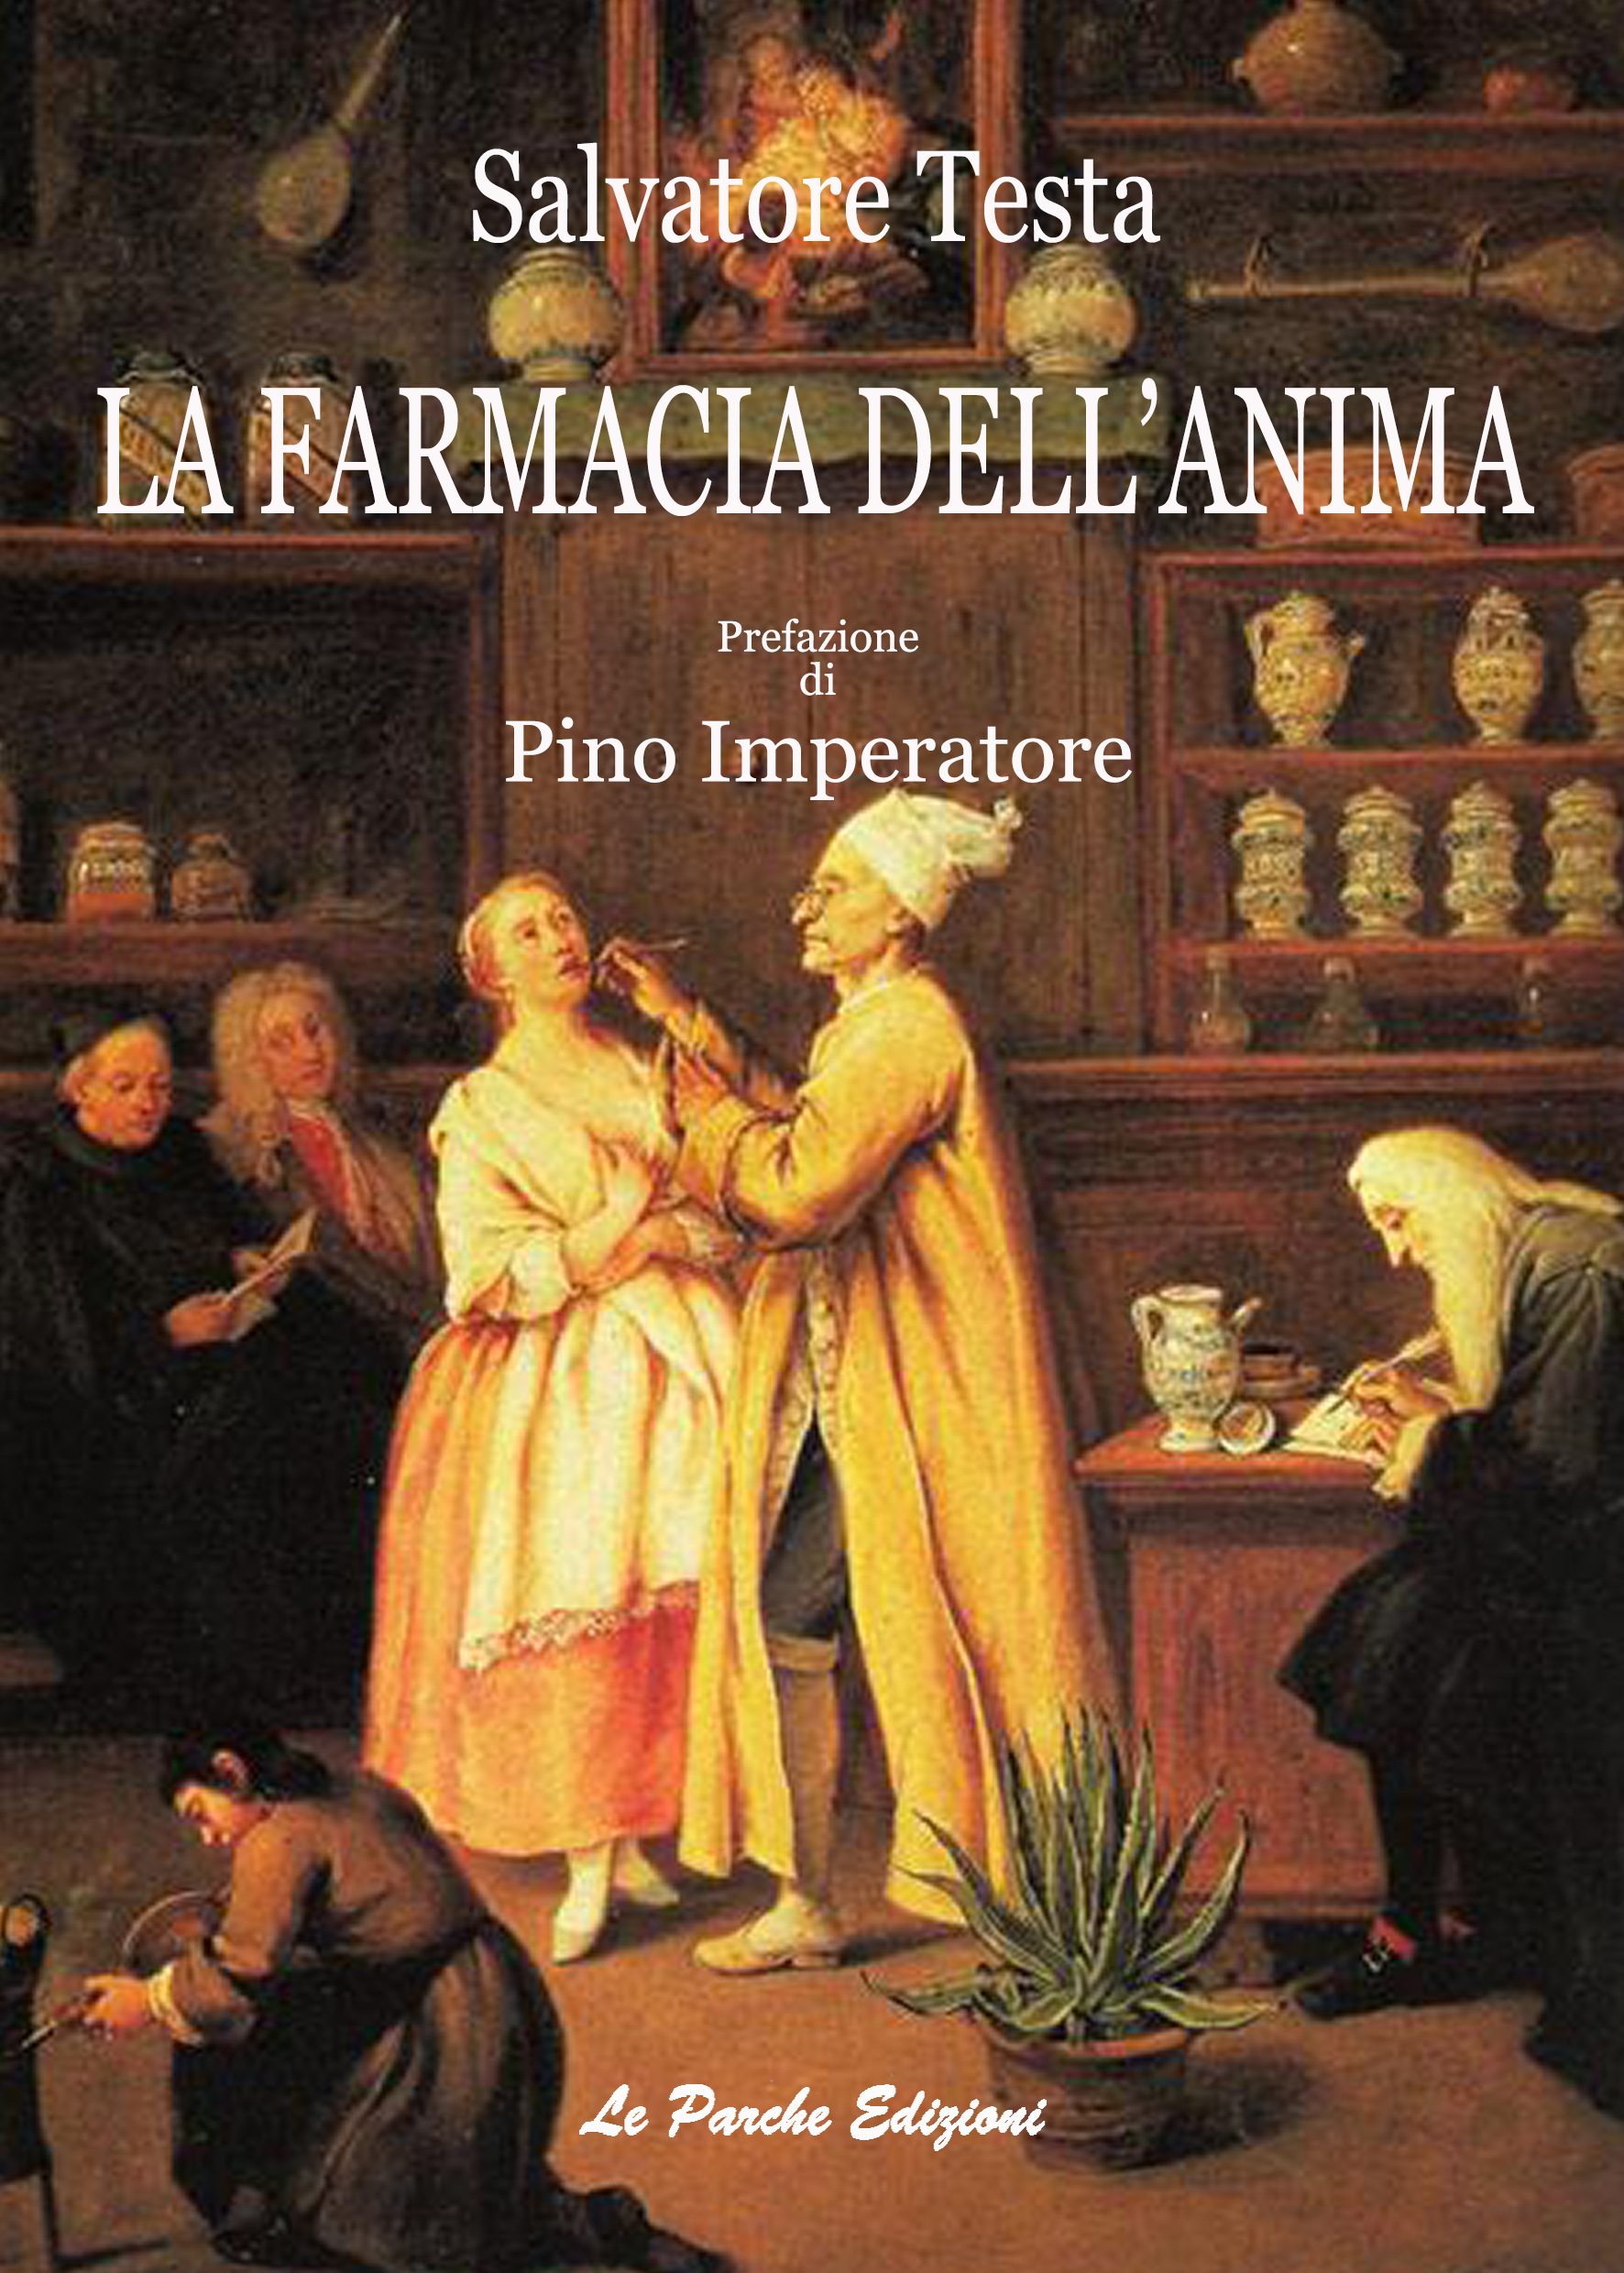 La Farmacia dell'Anima